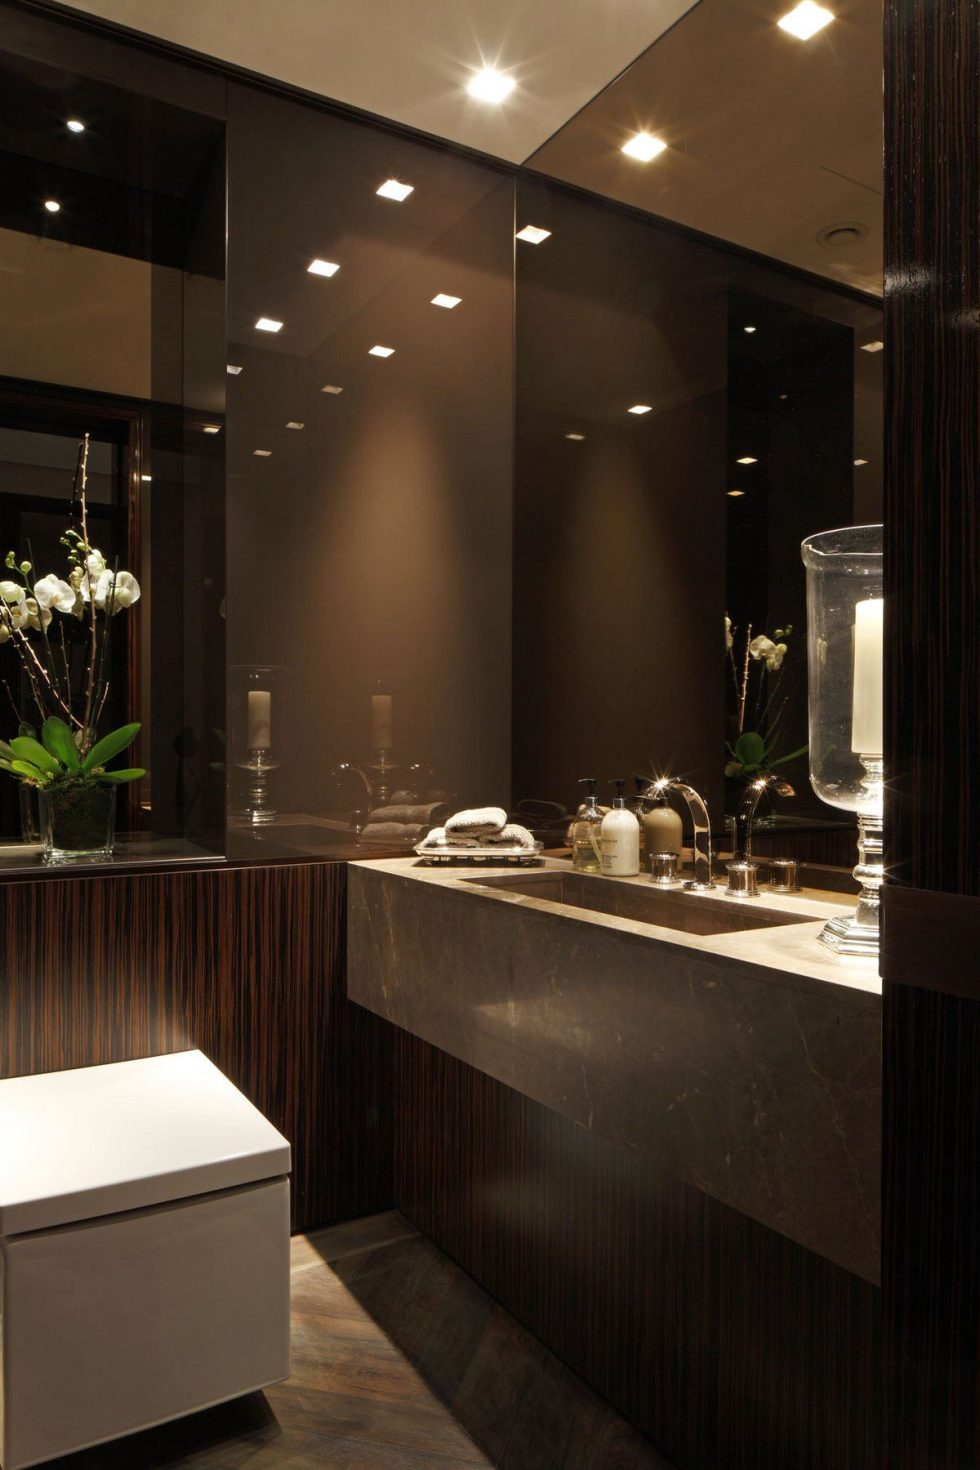 Kensington Place - Bathroom 2